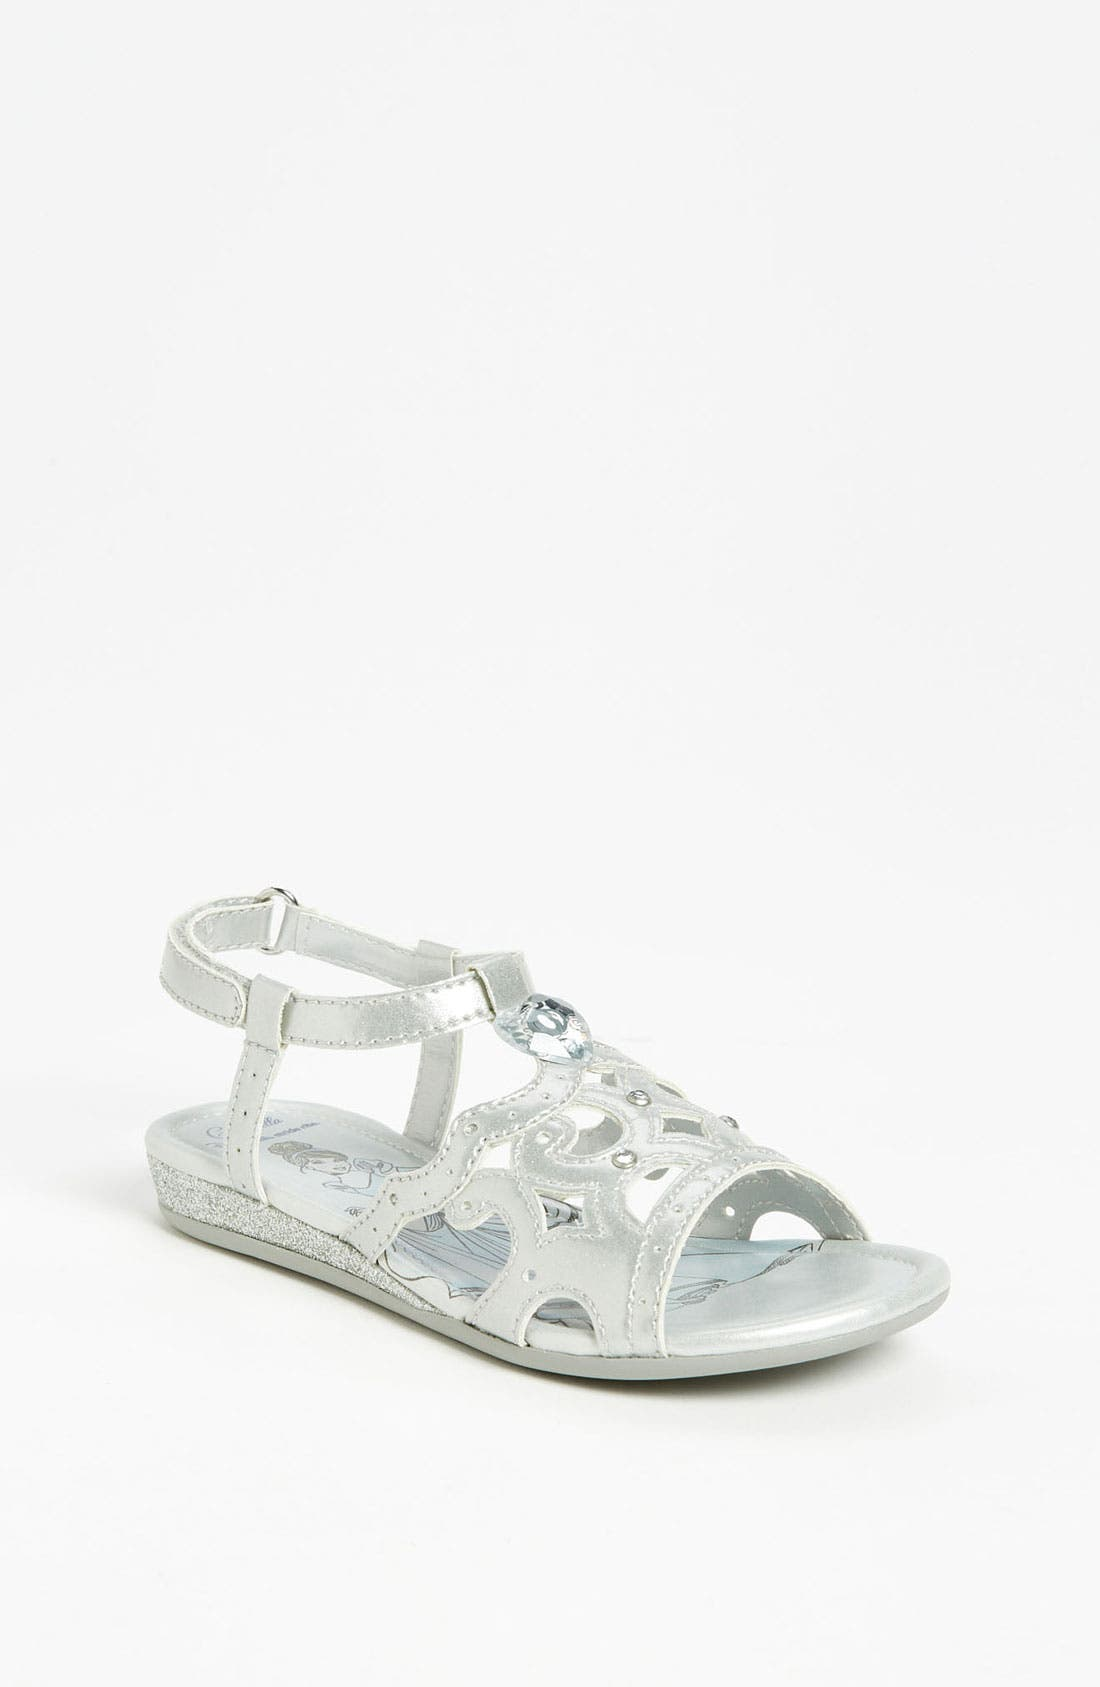 Alternate Image 1 Selected - Stride Rite 'Disney - Crown' Sandal (Toddler)